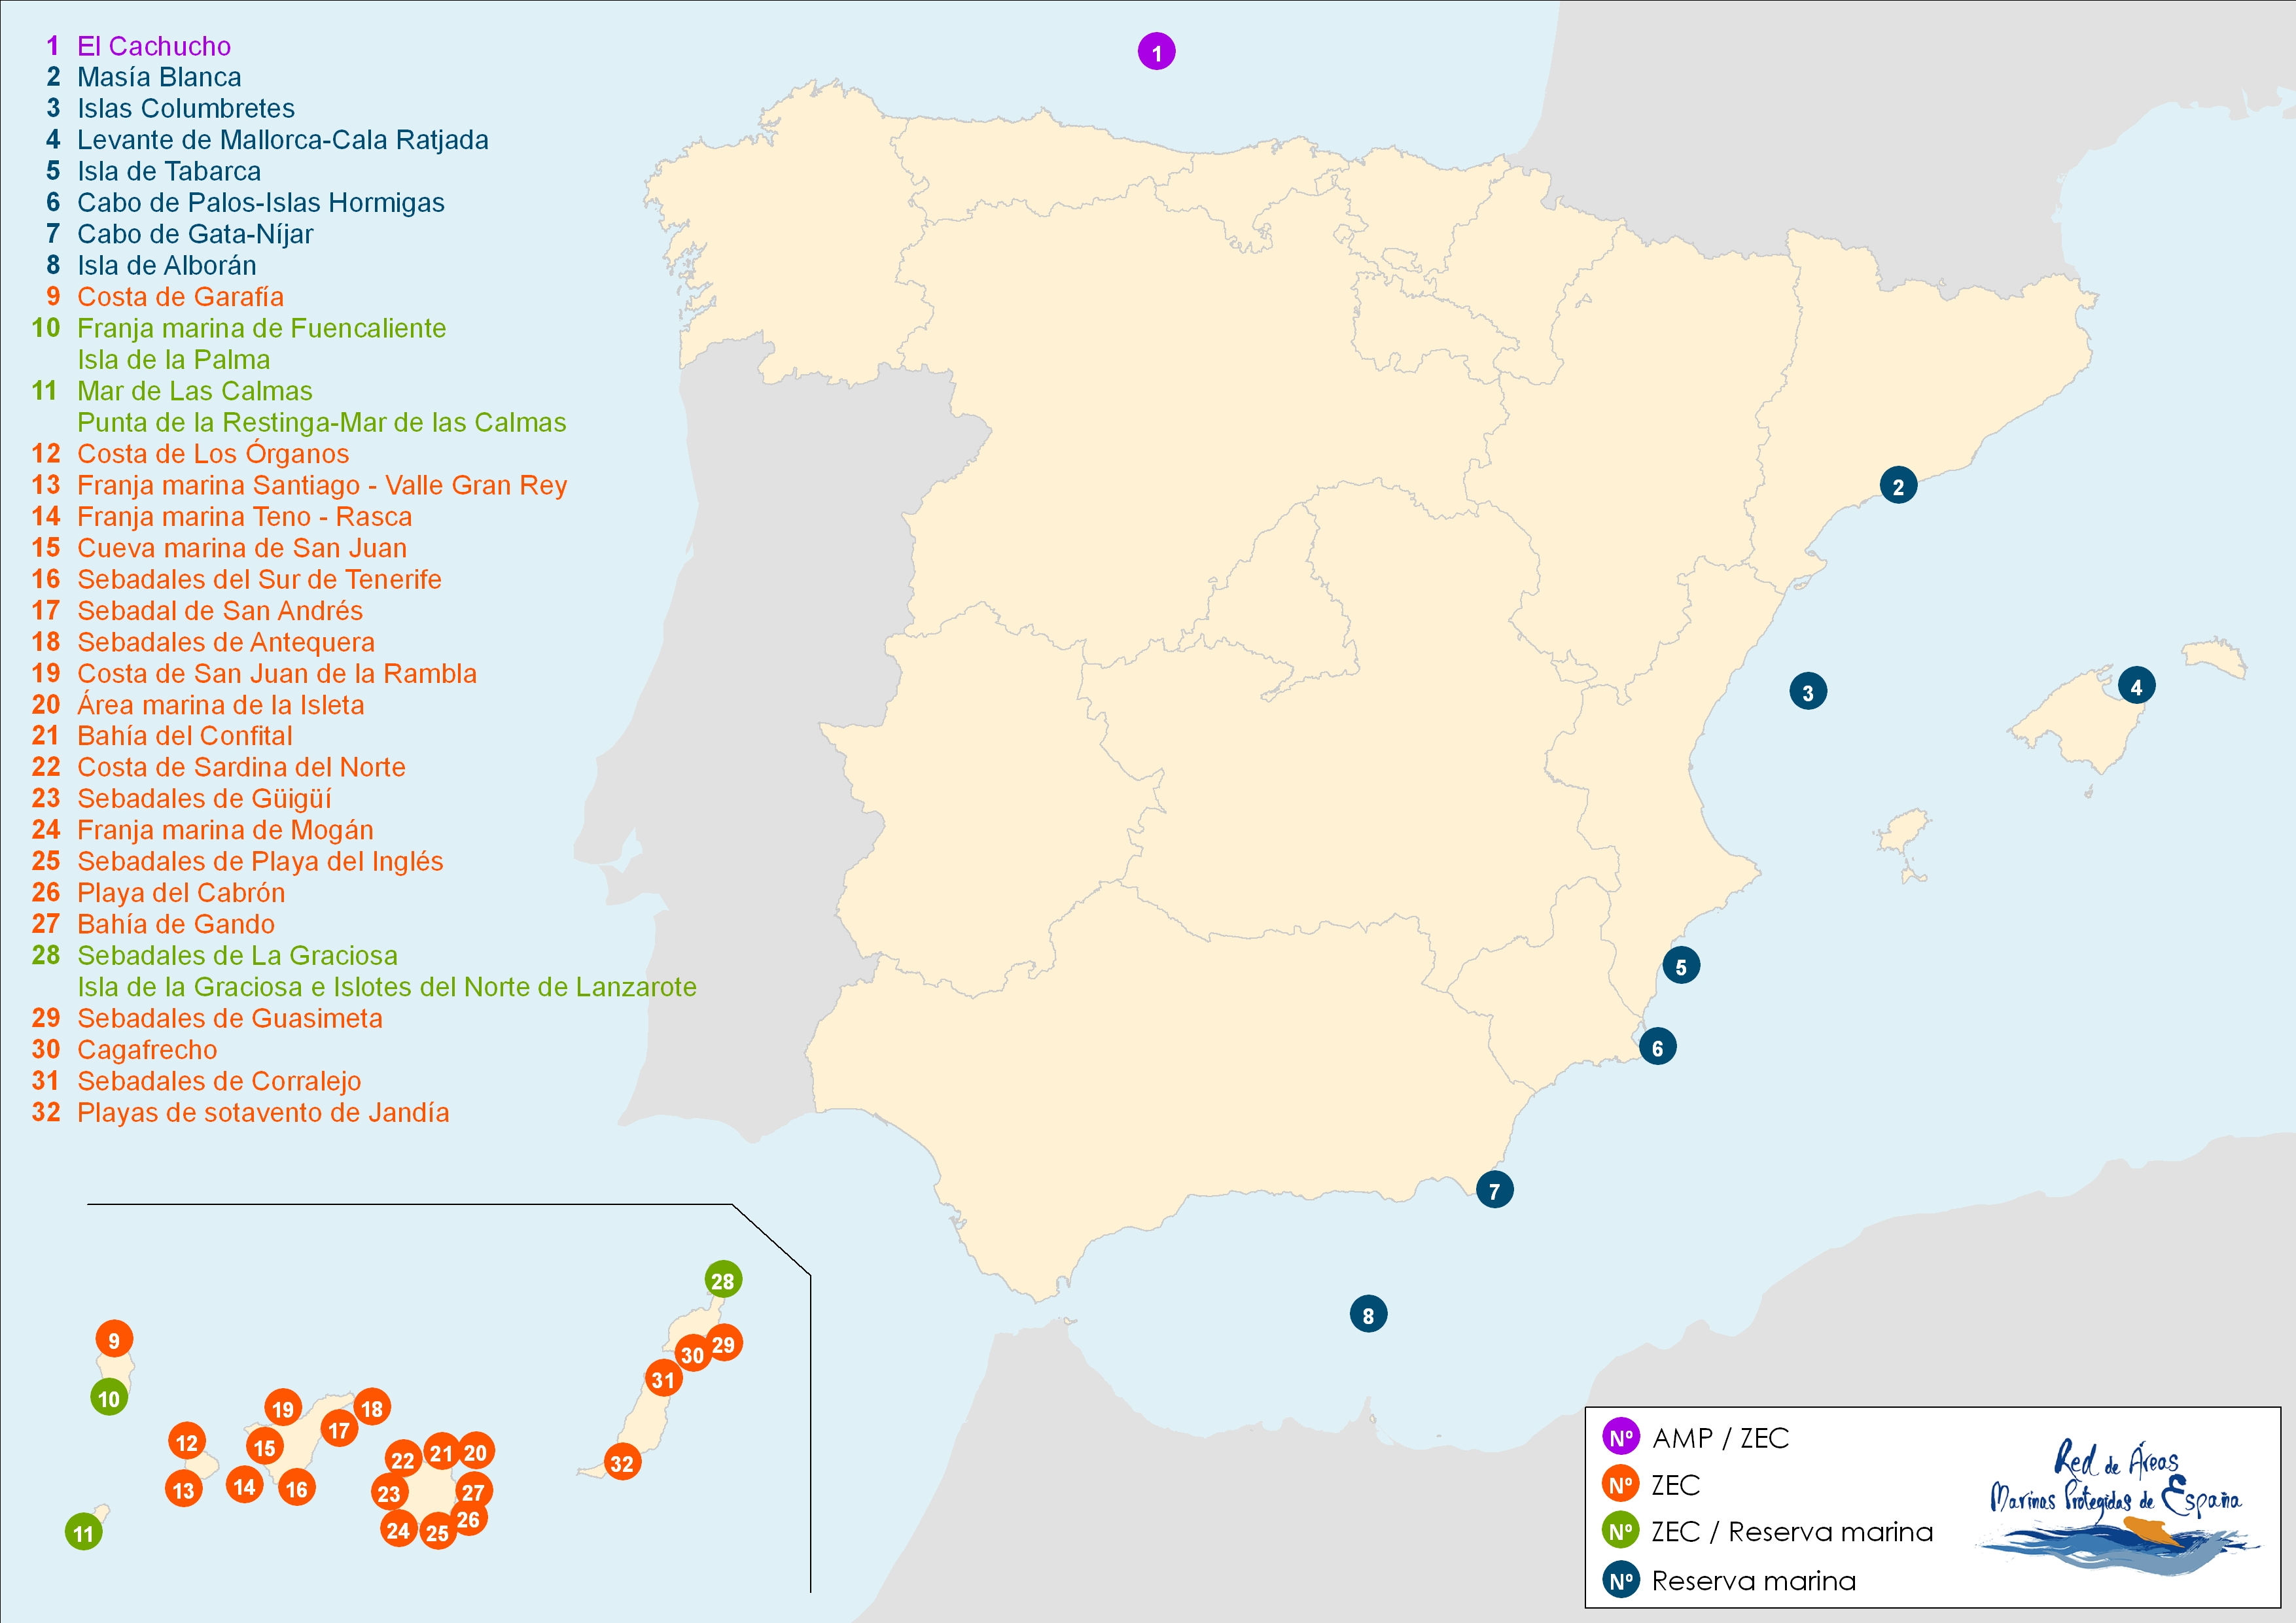 Madrid, landmass, baleares, melilla, ceuta, the country current climate conditions and forecast to get your